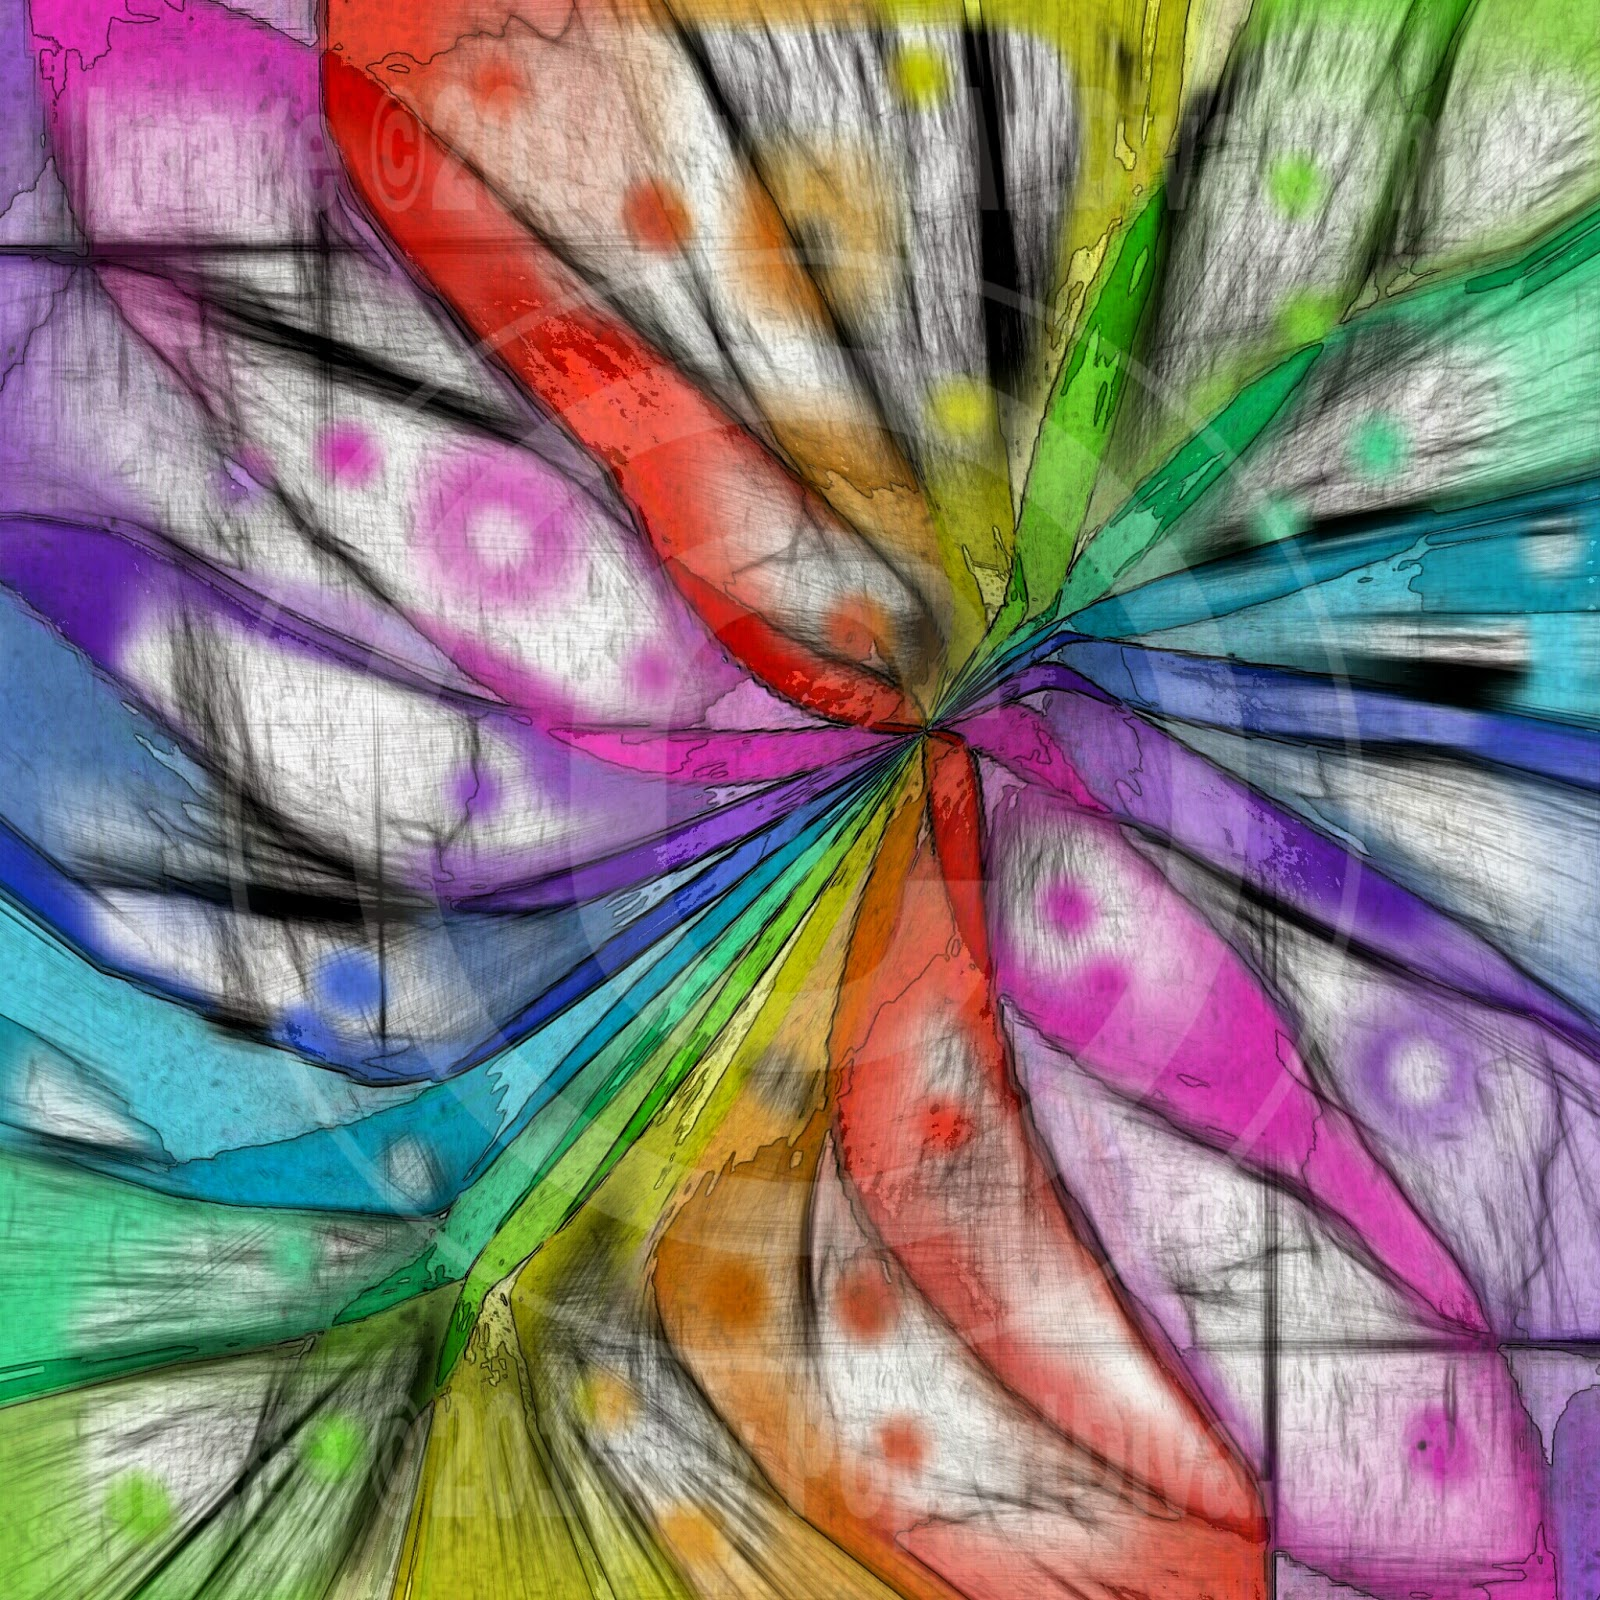 http://store.payloadz.com/details/2084288-photos-and-images-clip-art-kaleidoscope-abstract-dragonfly-web-graphic.html